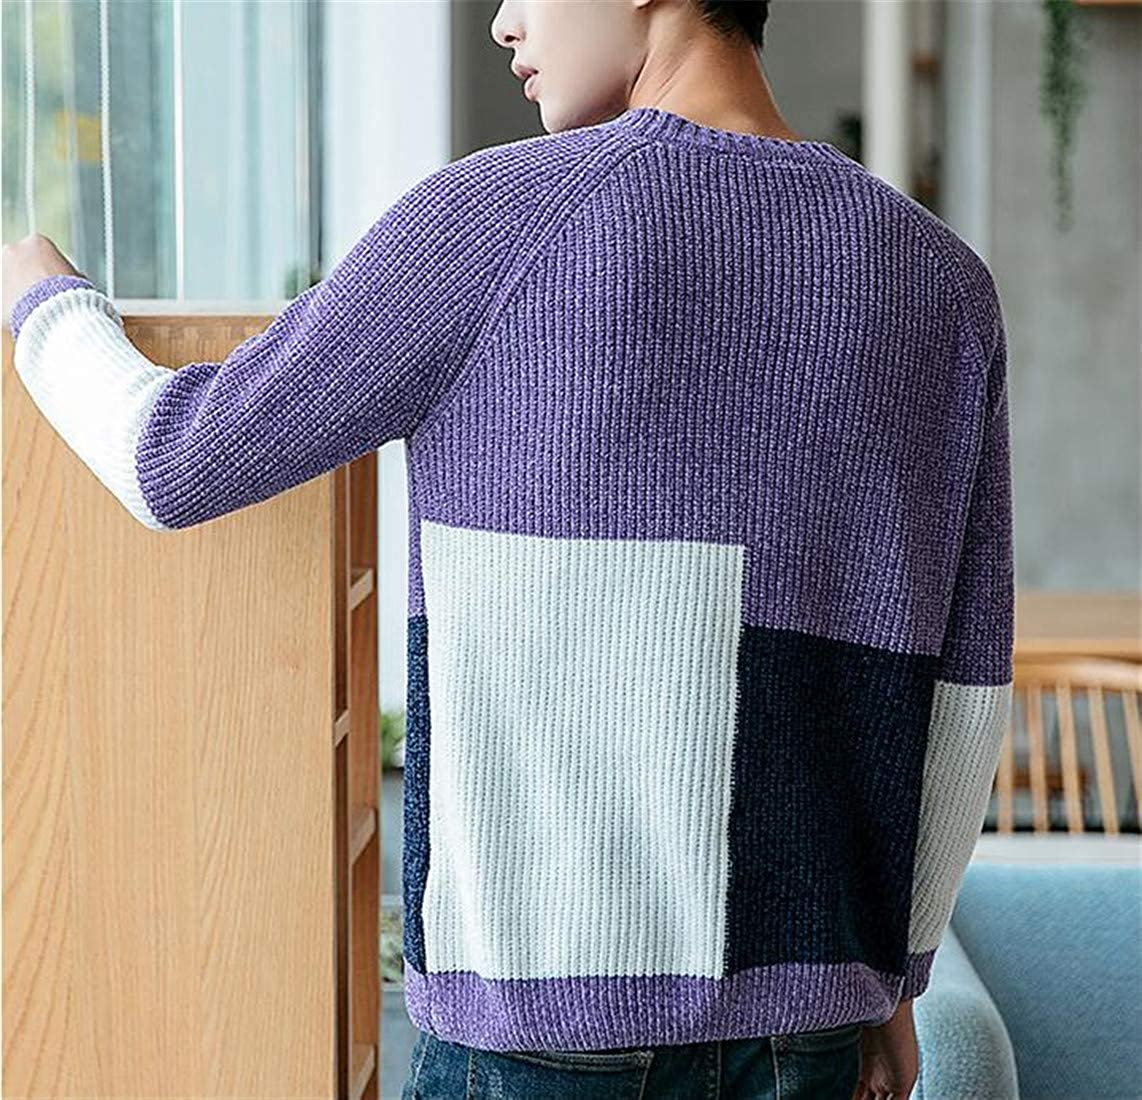 Etecredpow Mens Loose Fit Round Neck Knitted Contrast Colors Pullover Sweaters